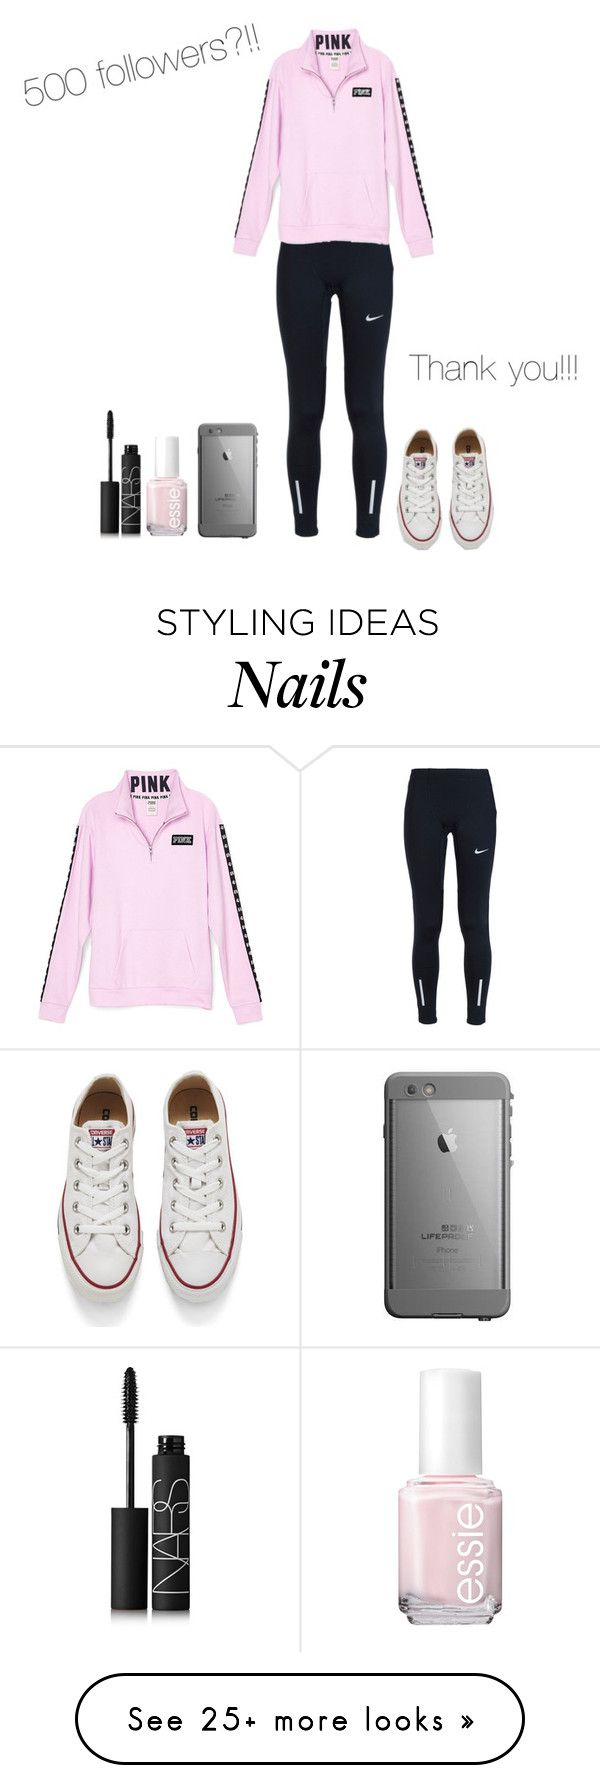 """""""Thanks for 500 followers!!!"""" by elizabethclawson on Polyvore featuring NIKE, Converse, Essie, NARS Cosmetics, women's clothing, women's fashion, women, female, woman and misses"""